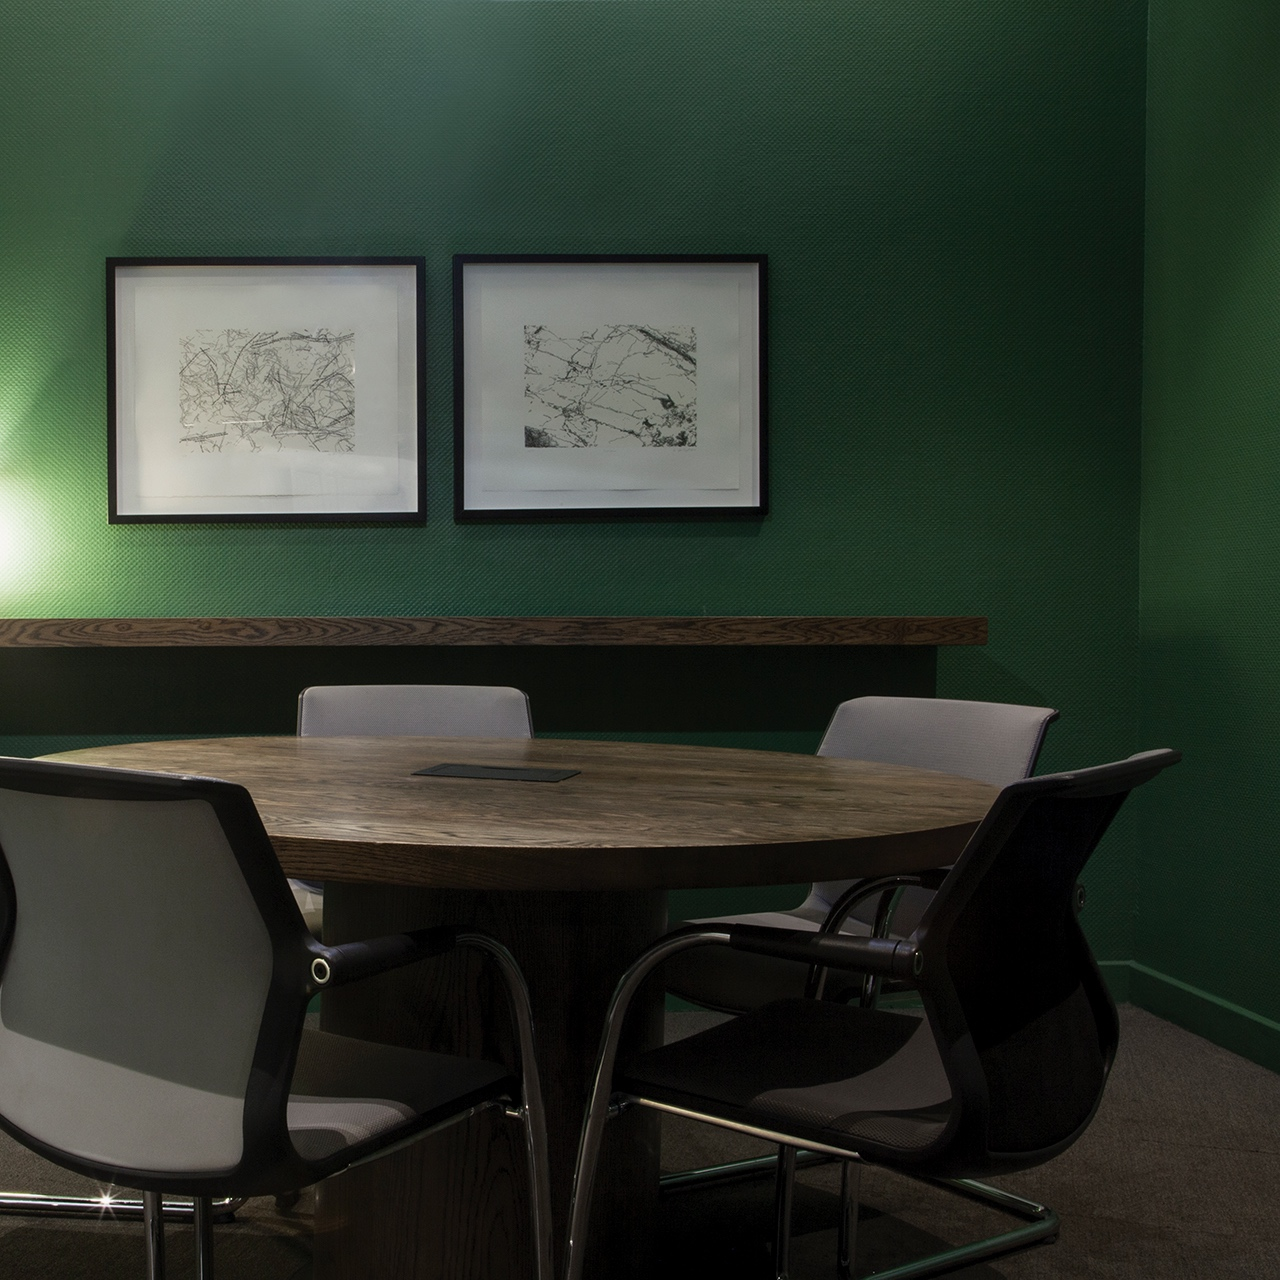 Fourth street - An eclectic meeting room with furnishings inspired from the post-war 1950s era.